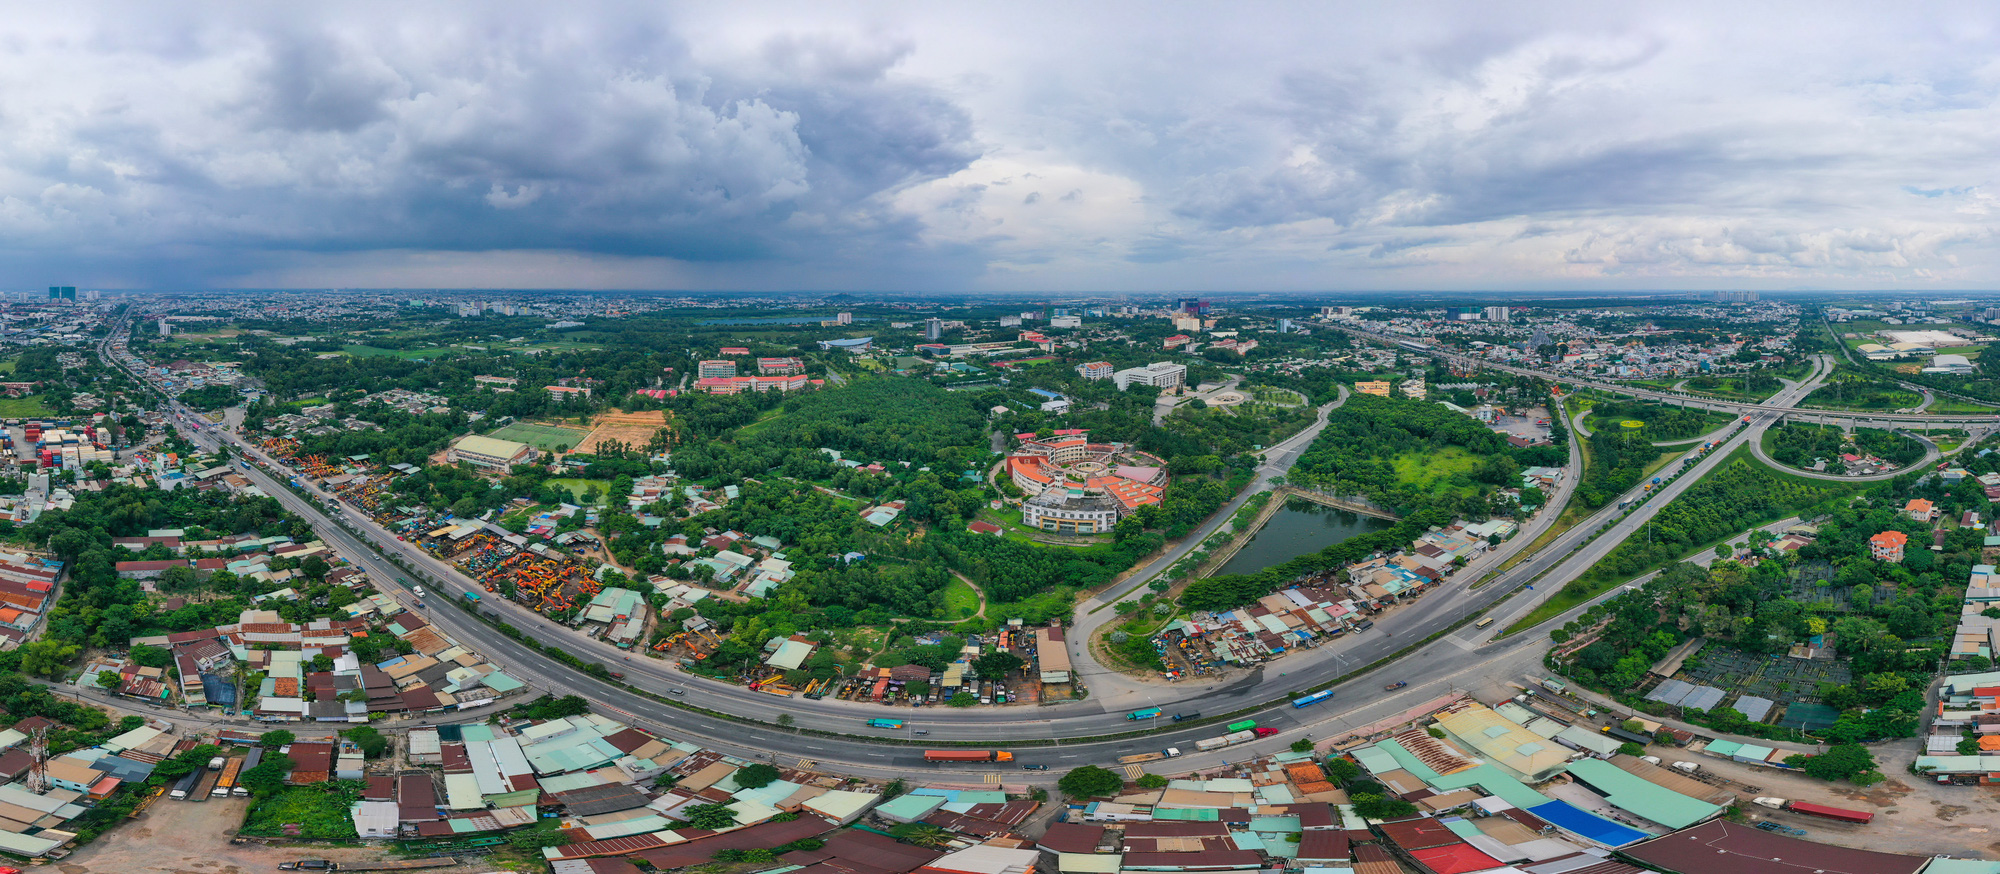 How to name new 'eastern city' in Ho Chi Minh City?